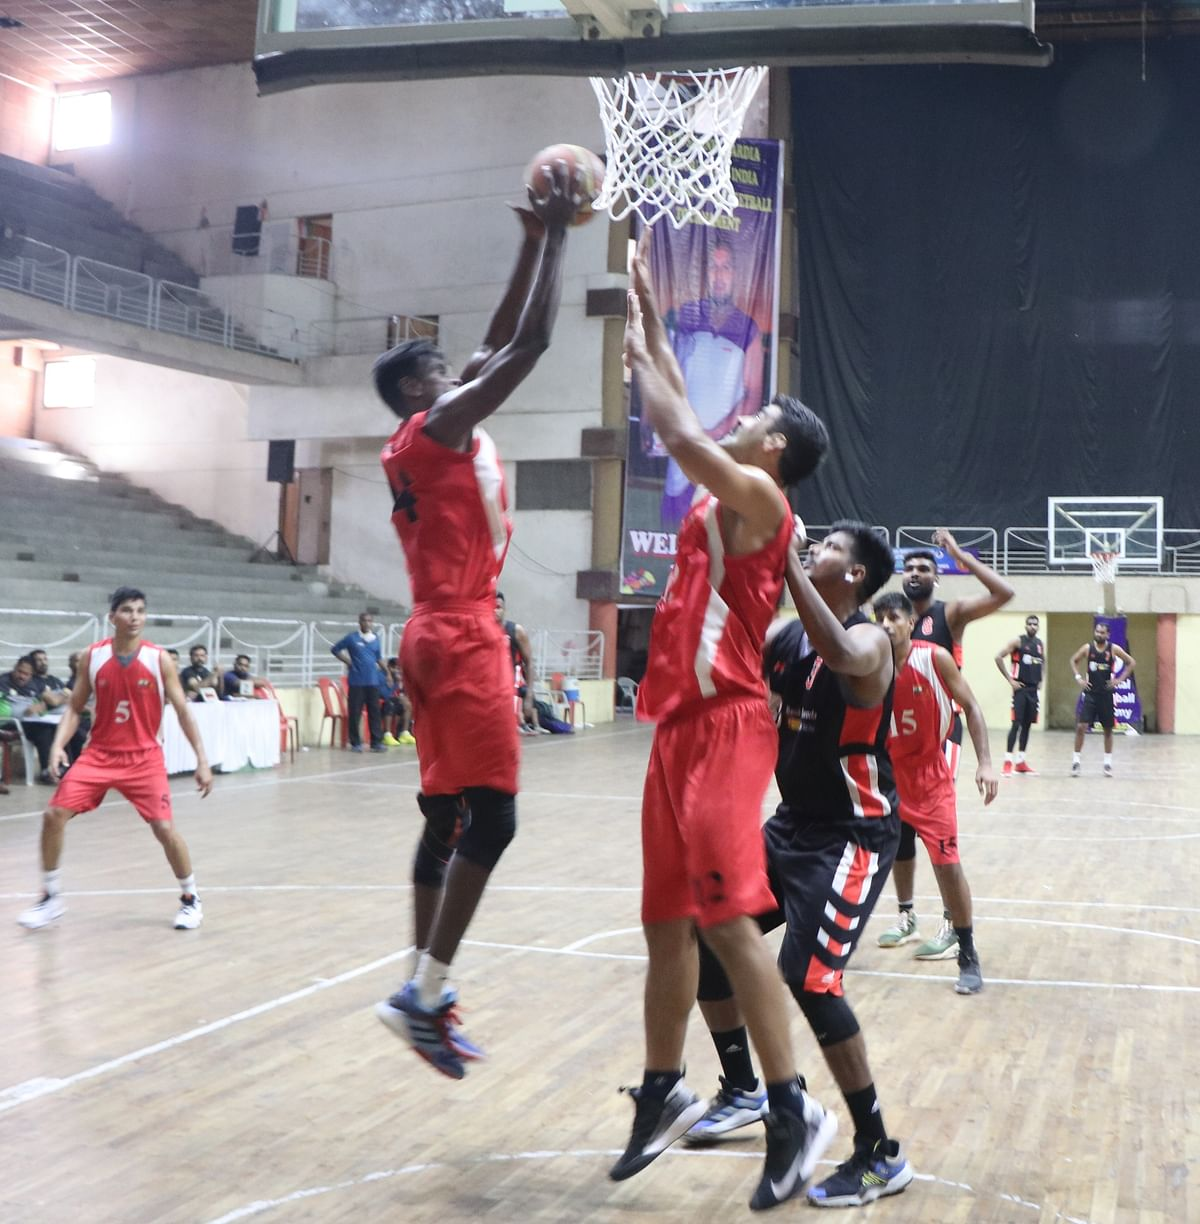 Basketball match in Indore on Sunday